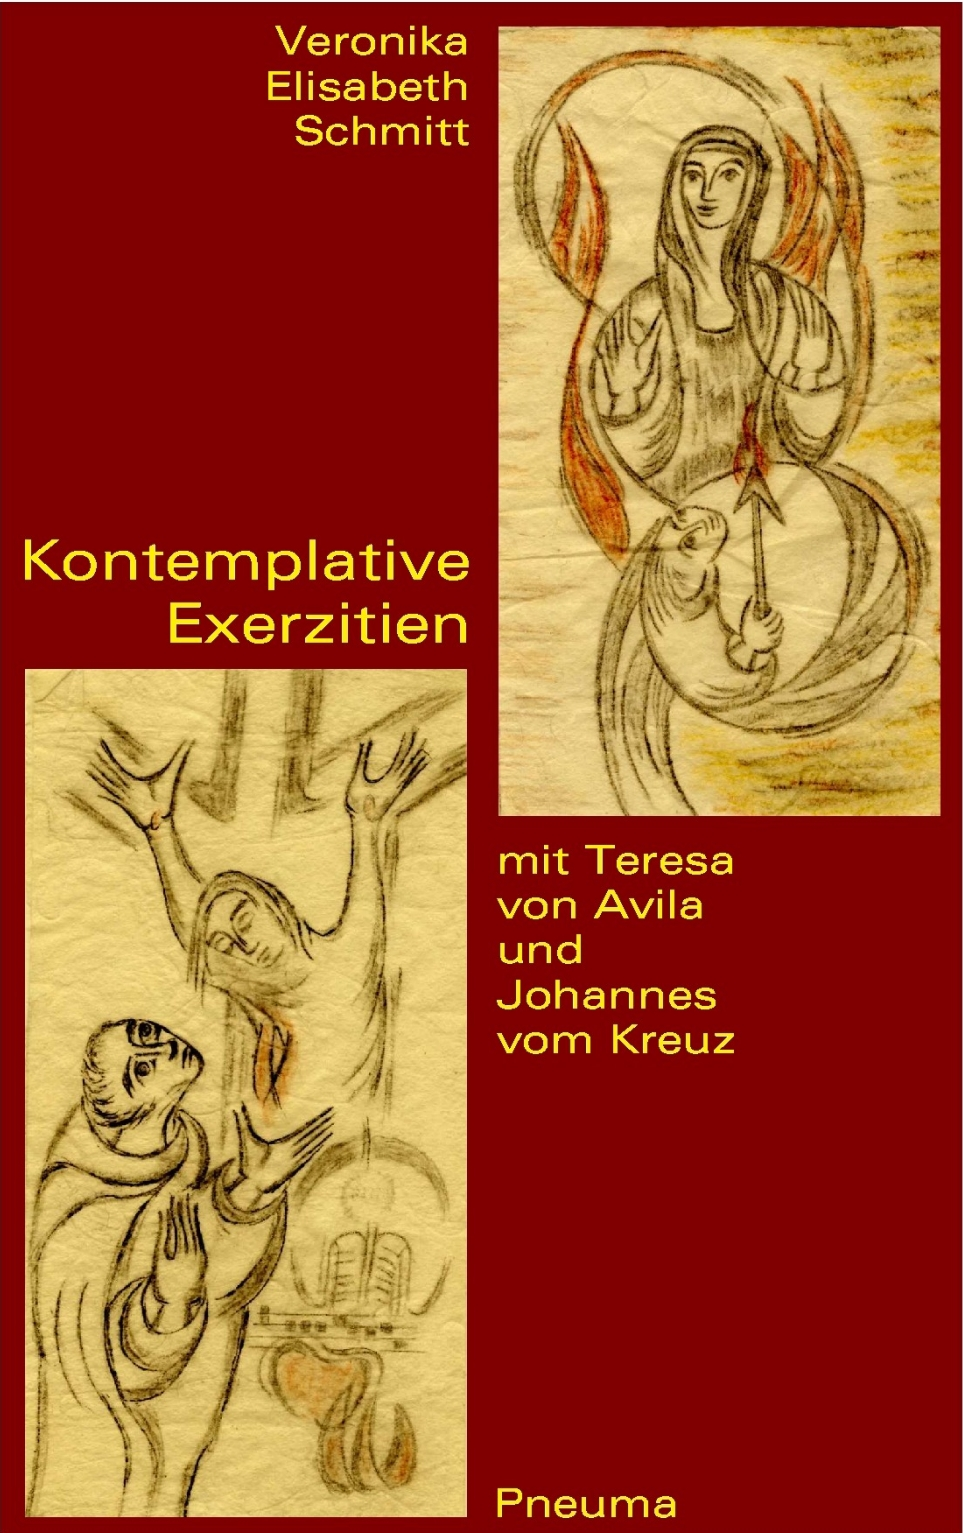 Veronika E Schmitt: Kontemplative Exerzitien